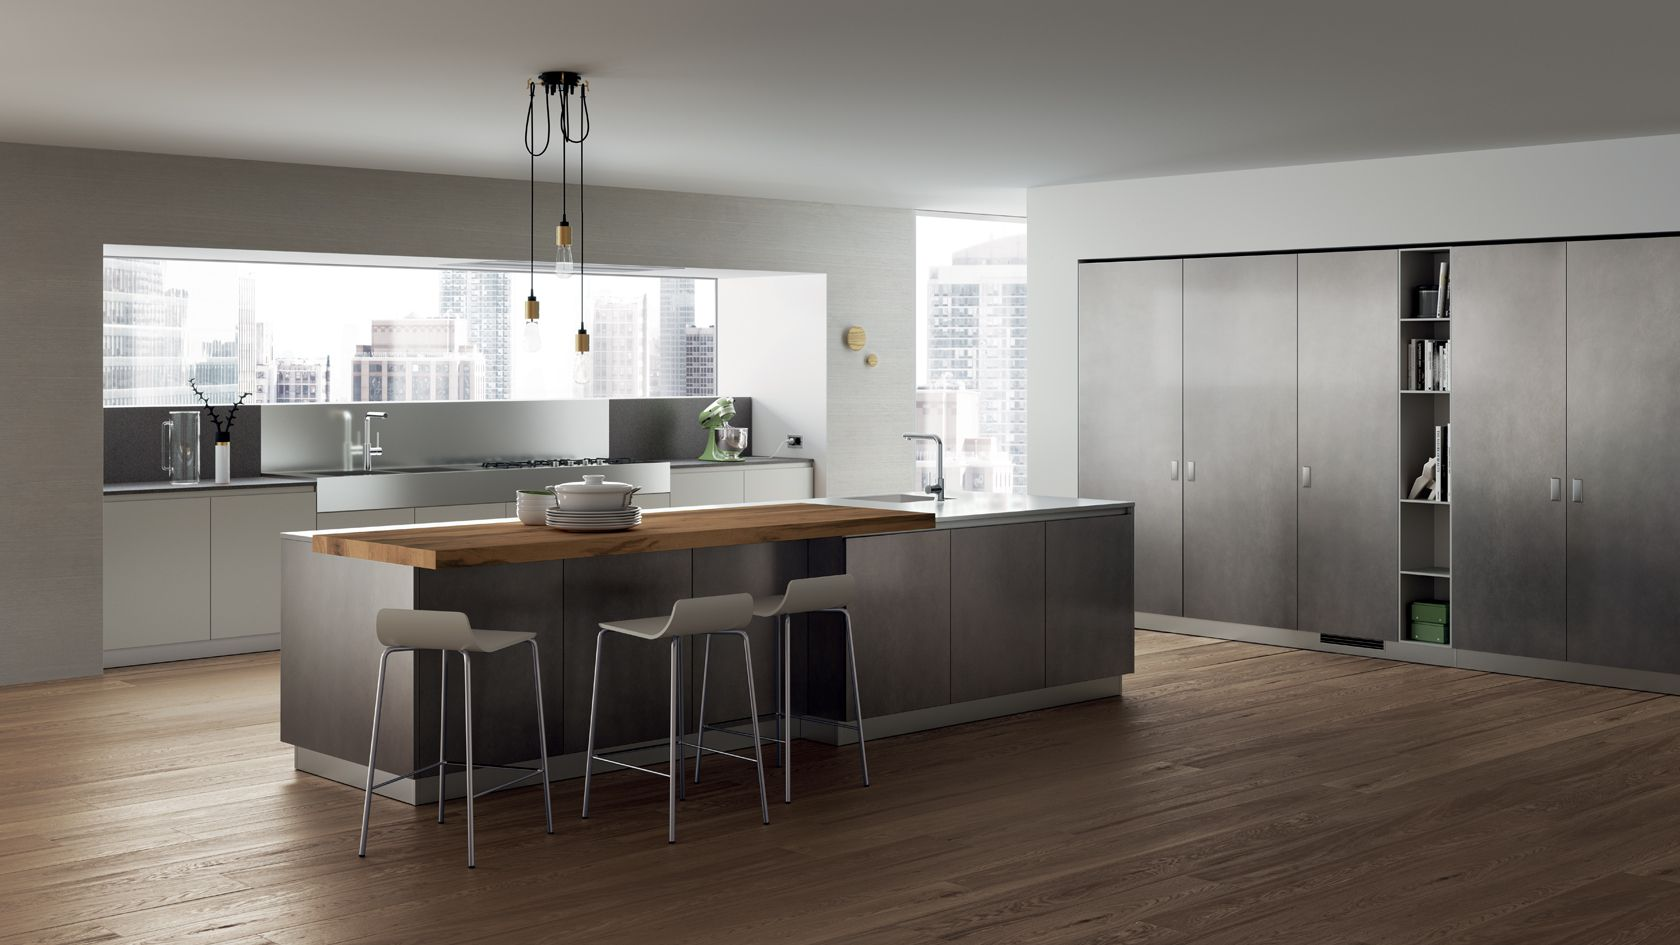 Home holzbar design-ideen foodshelf  scavolini cucine  pinterest  kitchens kitchen design